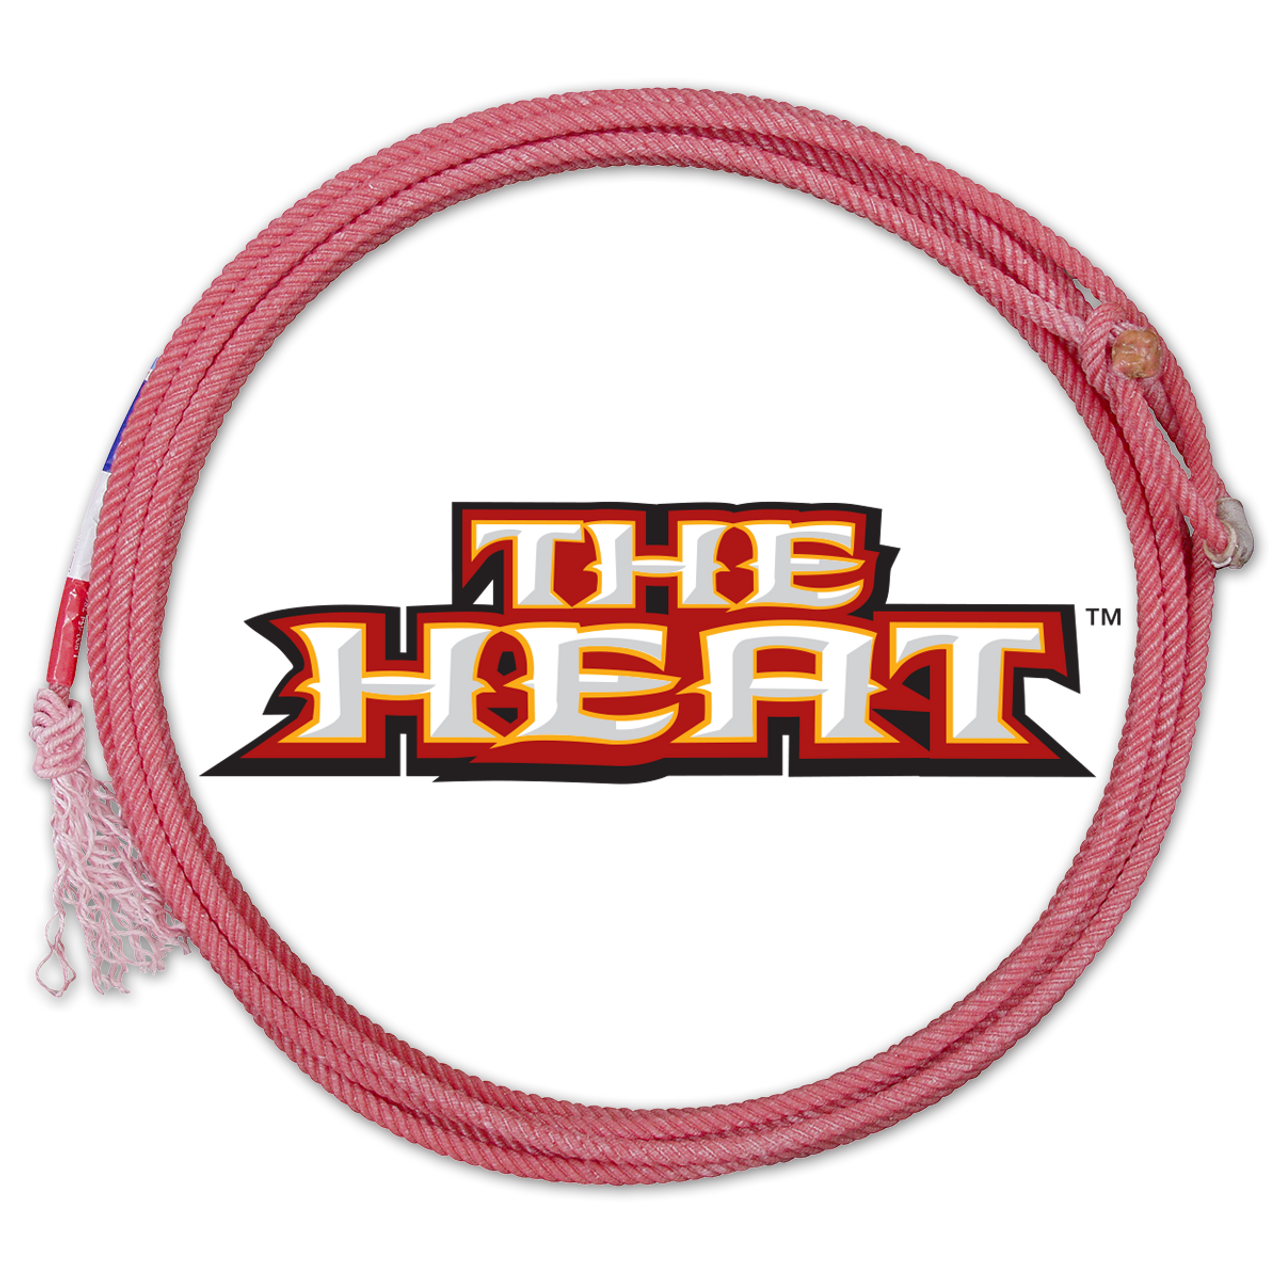 The Heat is the next generation four strand technology from Classic® Rope. Made from a blend of custom fibers and intricate twists, The Heat has set a new standard in rope feel and performance. Designed for today's aggressive roping styles, The Heat provides a loop that is packed with body. Even in forced situations, the tip remains ahead of the swing for a more controlled and confident delivery. Lightweight and built for performance, The Heat is built to take punishment. Run after run, it maintains its original, snappy feel. Top ropers such as Turtle Powell, Colby Lovell, Dustin Bird, and Rich Skelton are all packing Heat. Can you handle it?